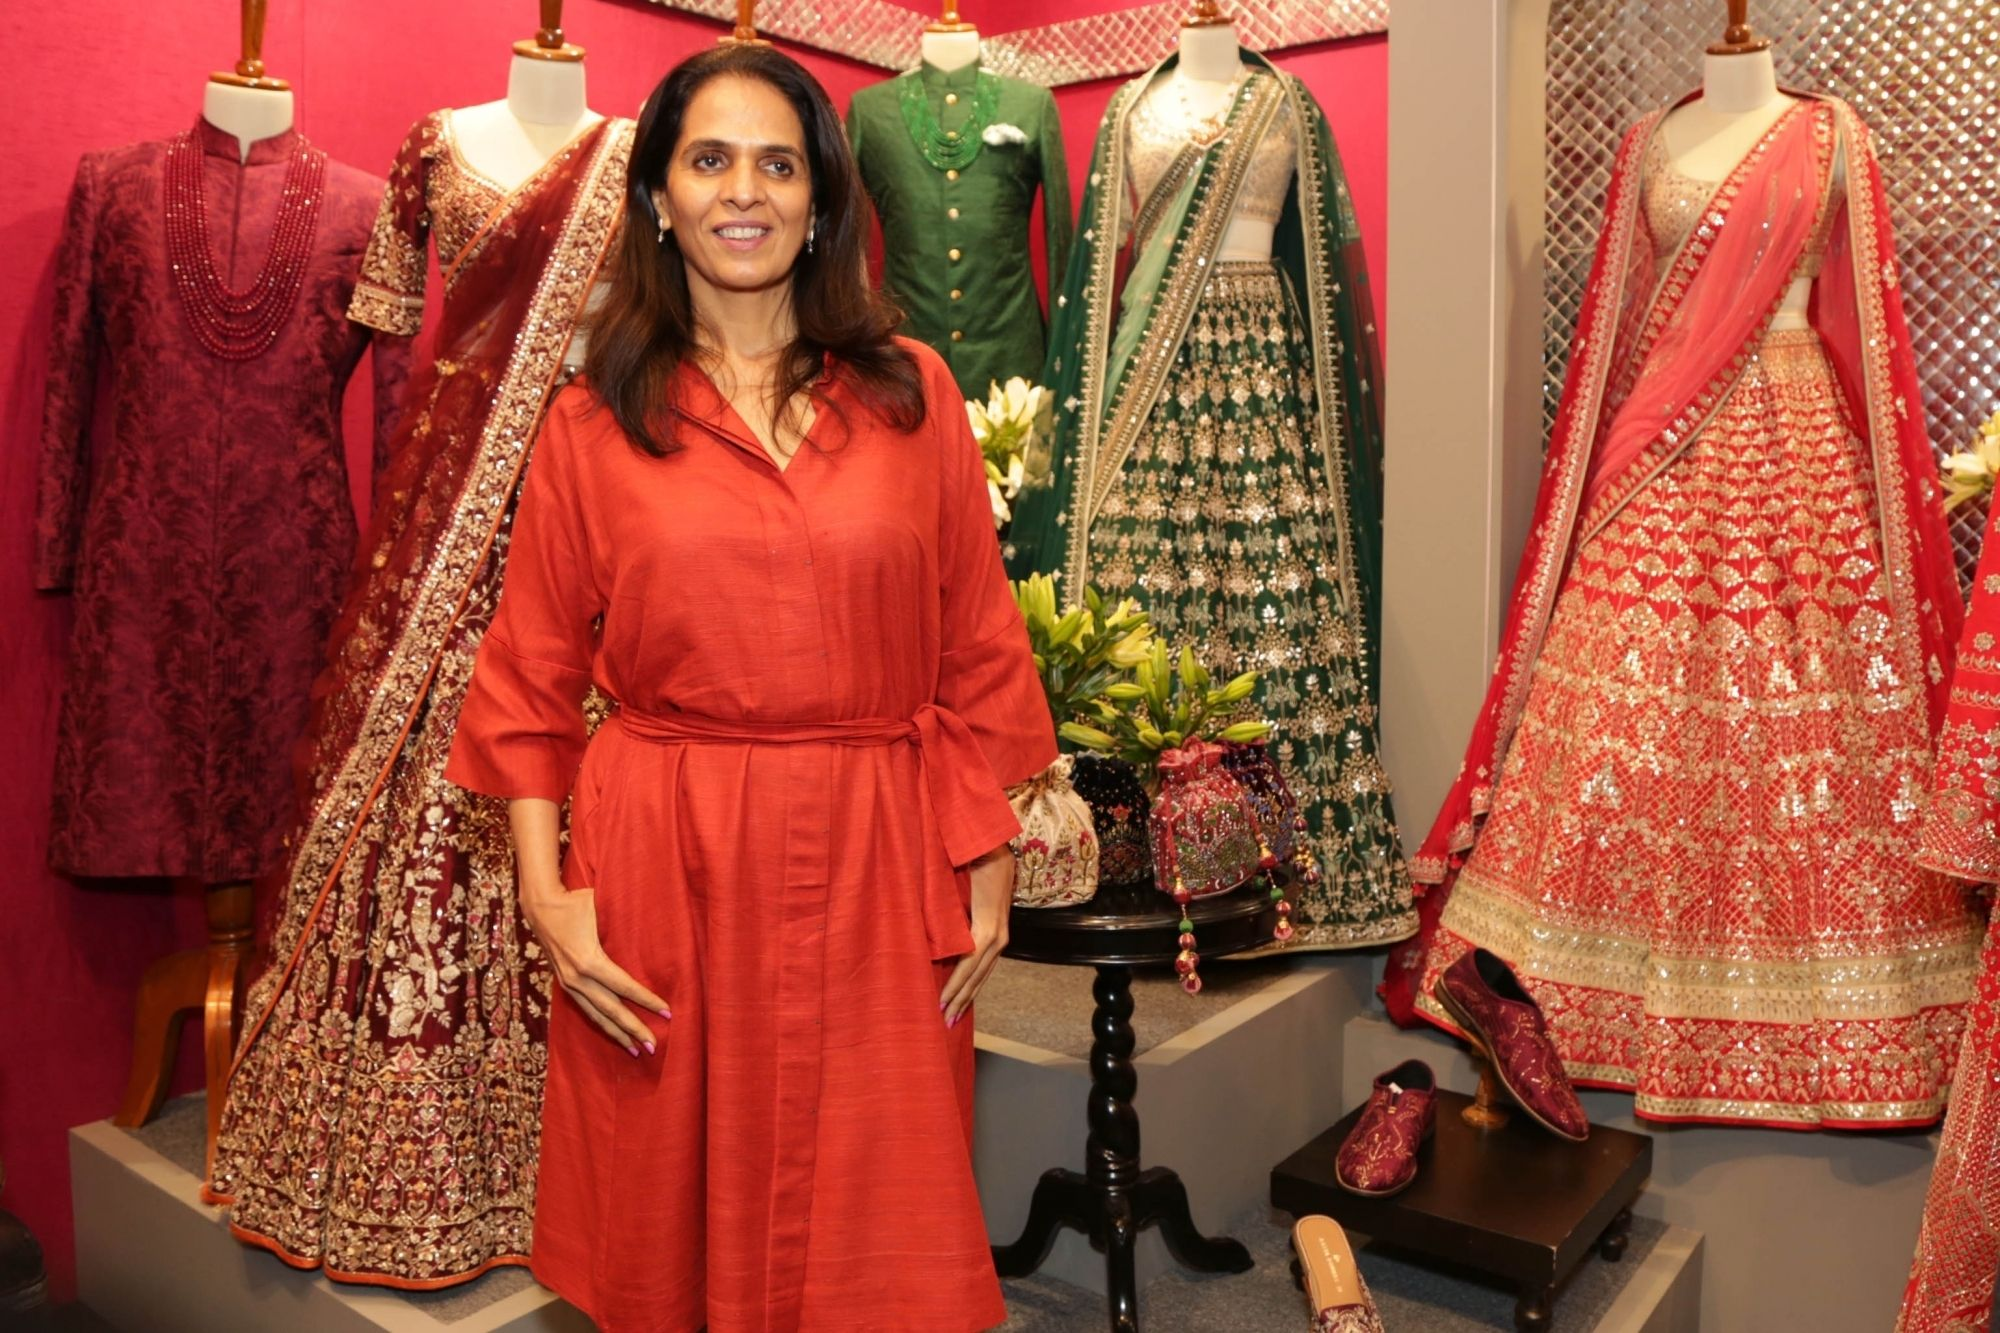 Anita Dongre Inspired By Strong Women Indian News In San Francisco Bay Area Area